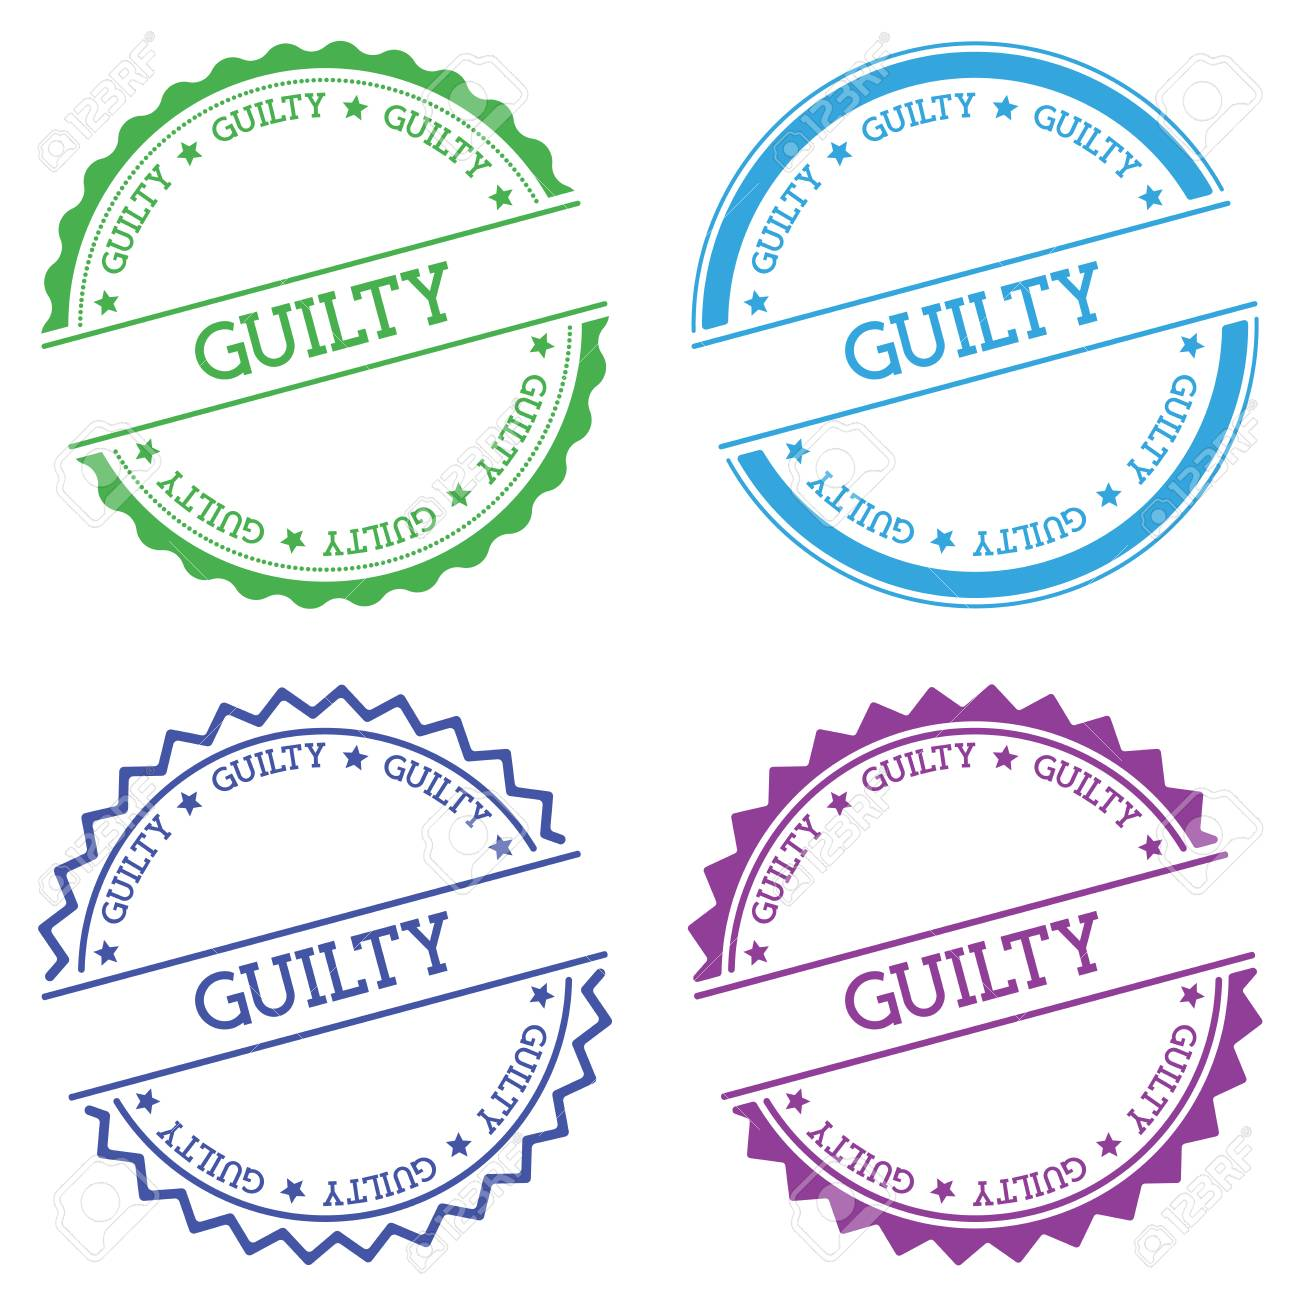 Guilty badge isolated on white background  Flat style round label